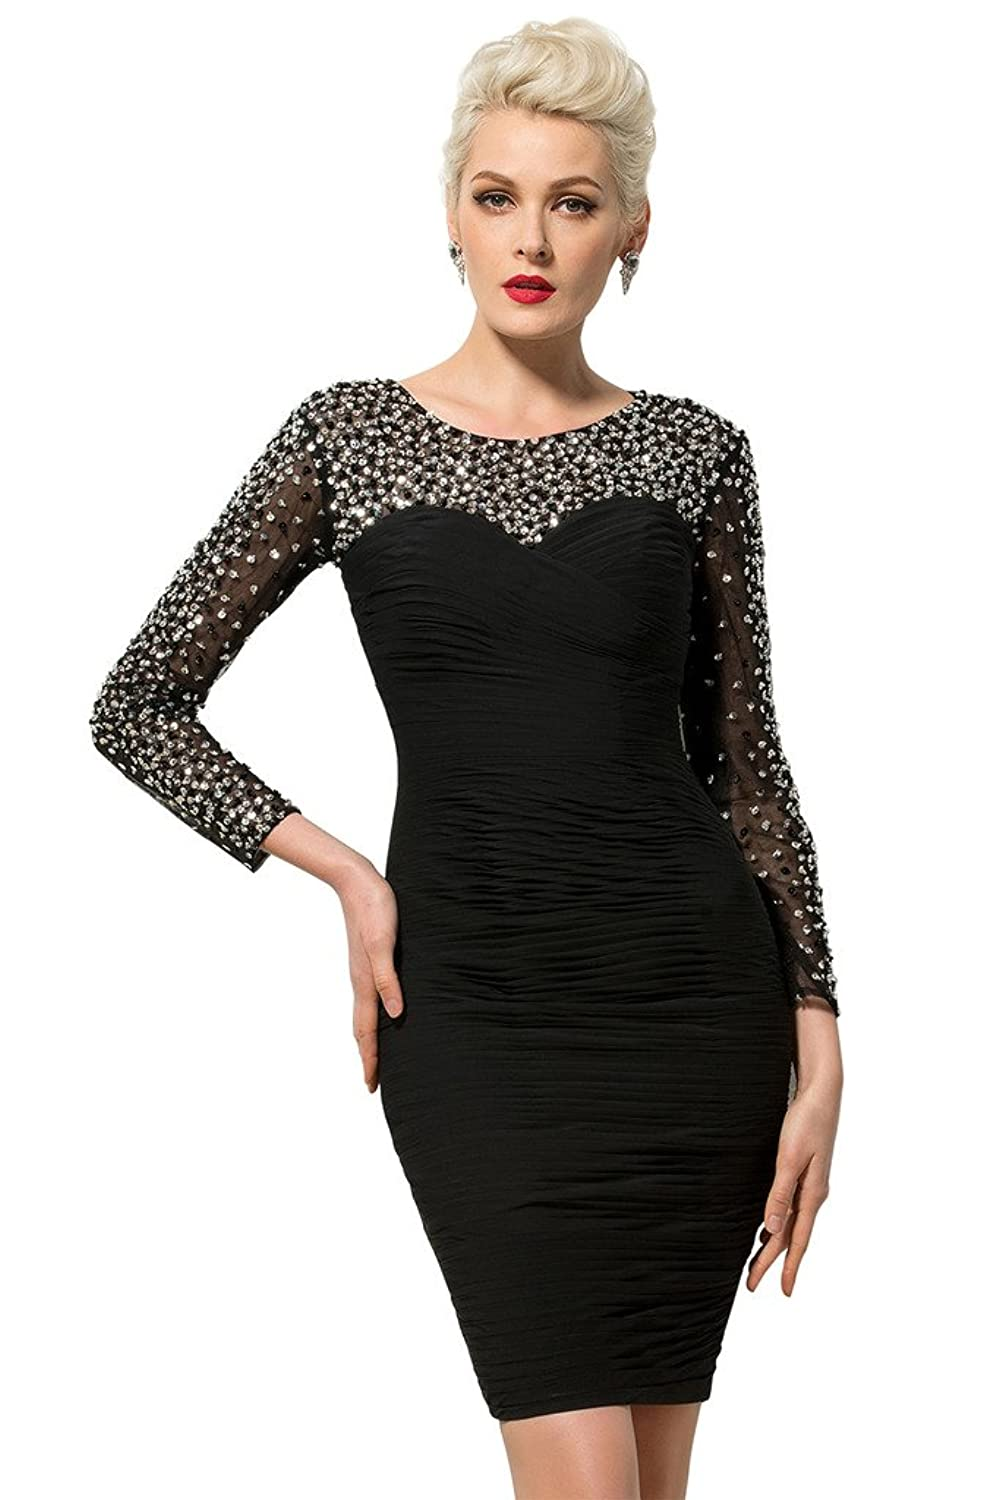 CLOCOLOR Women's Sheath Long Sleeves Beaded Crystals Cocktail Dresses Prom Gowns